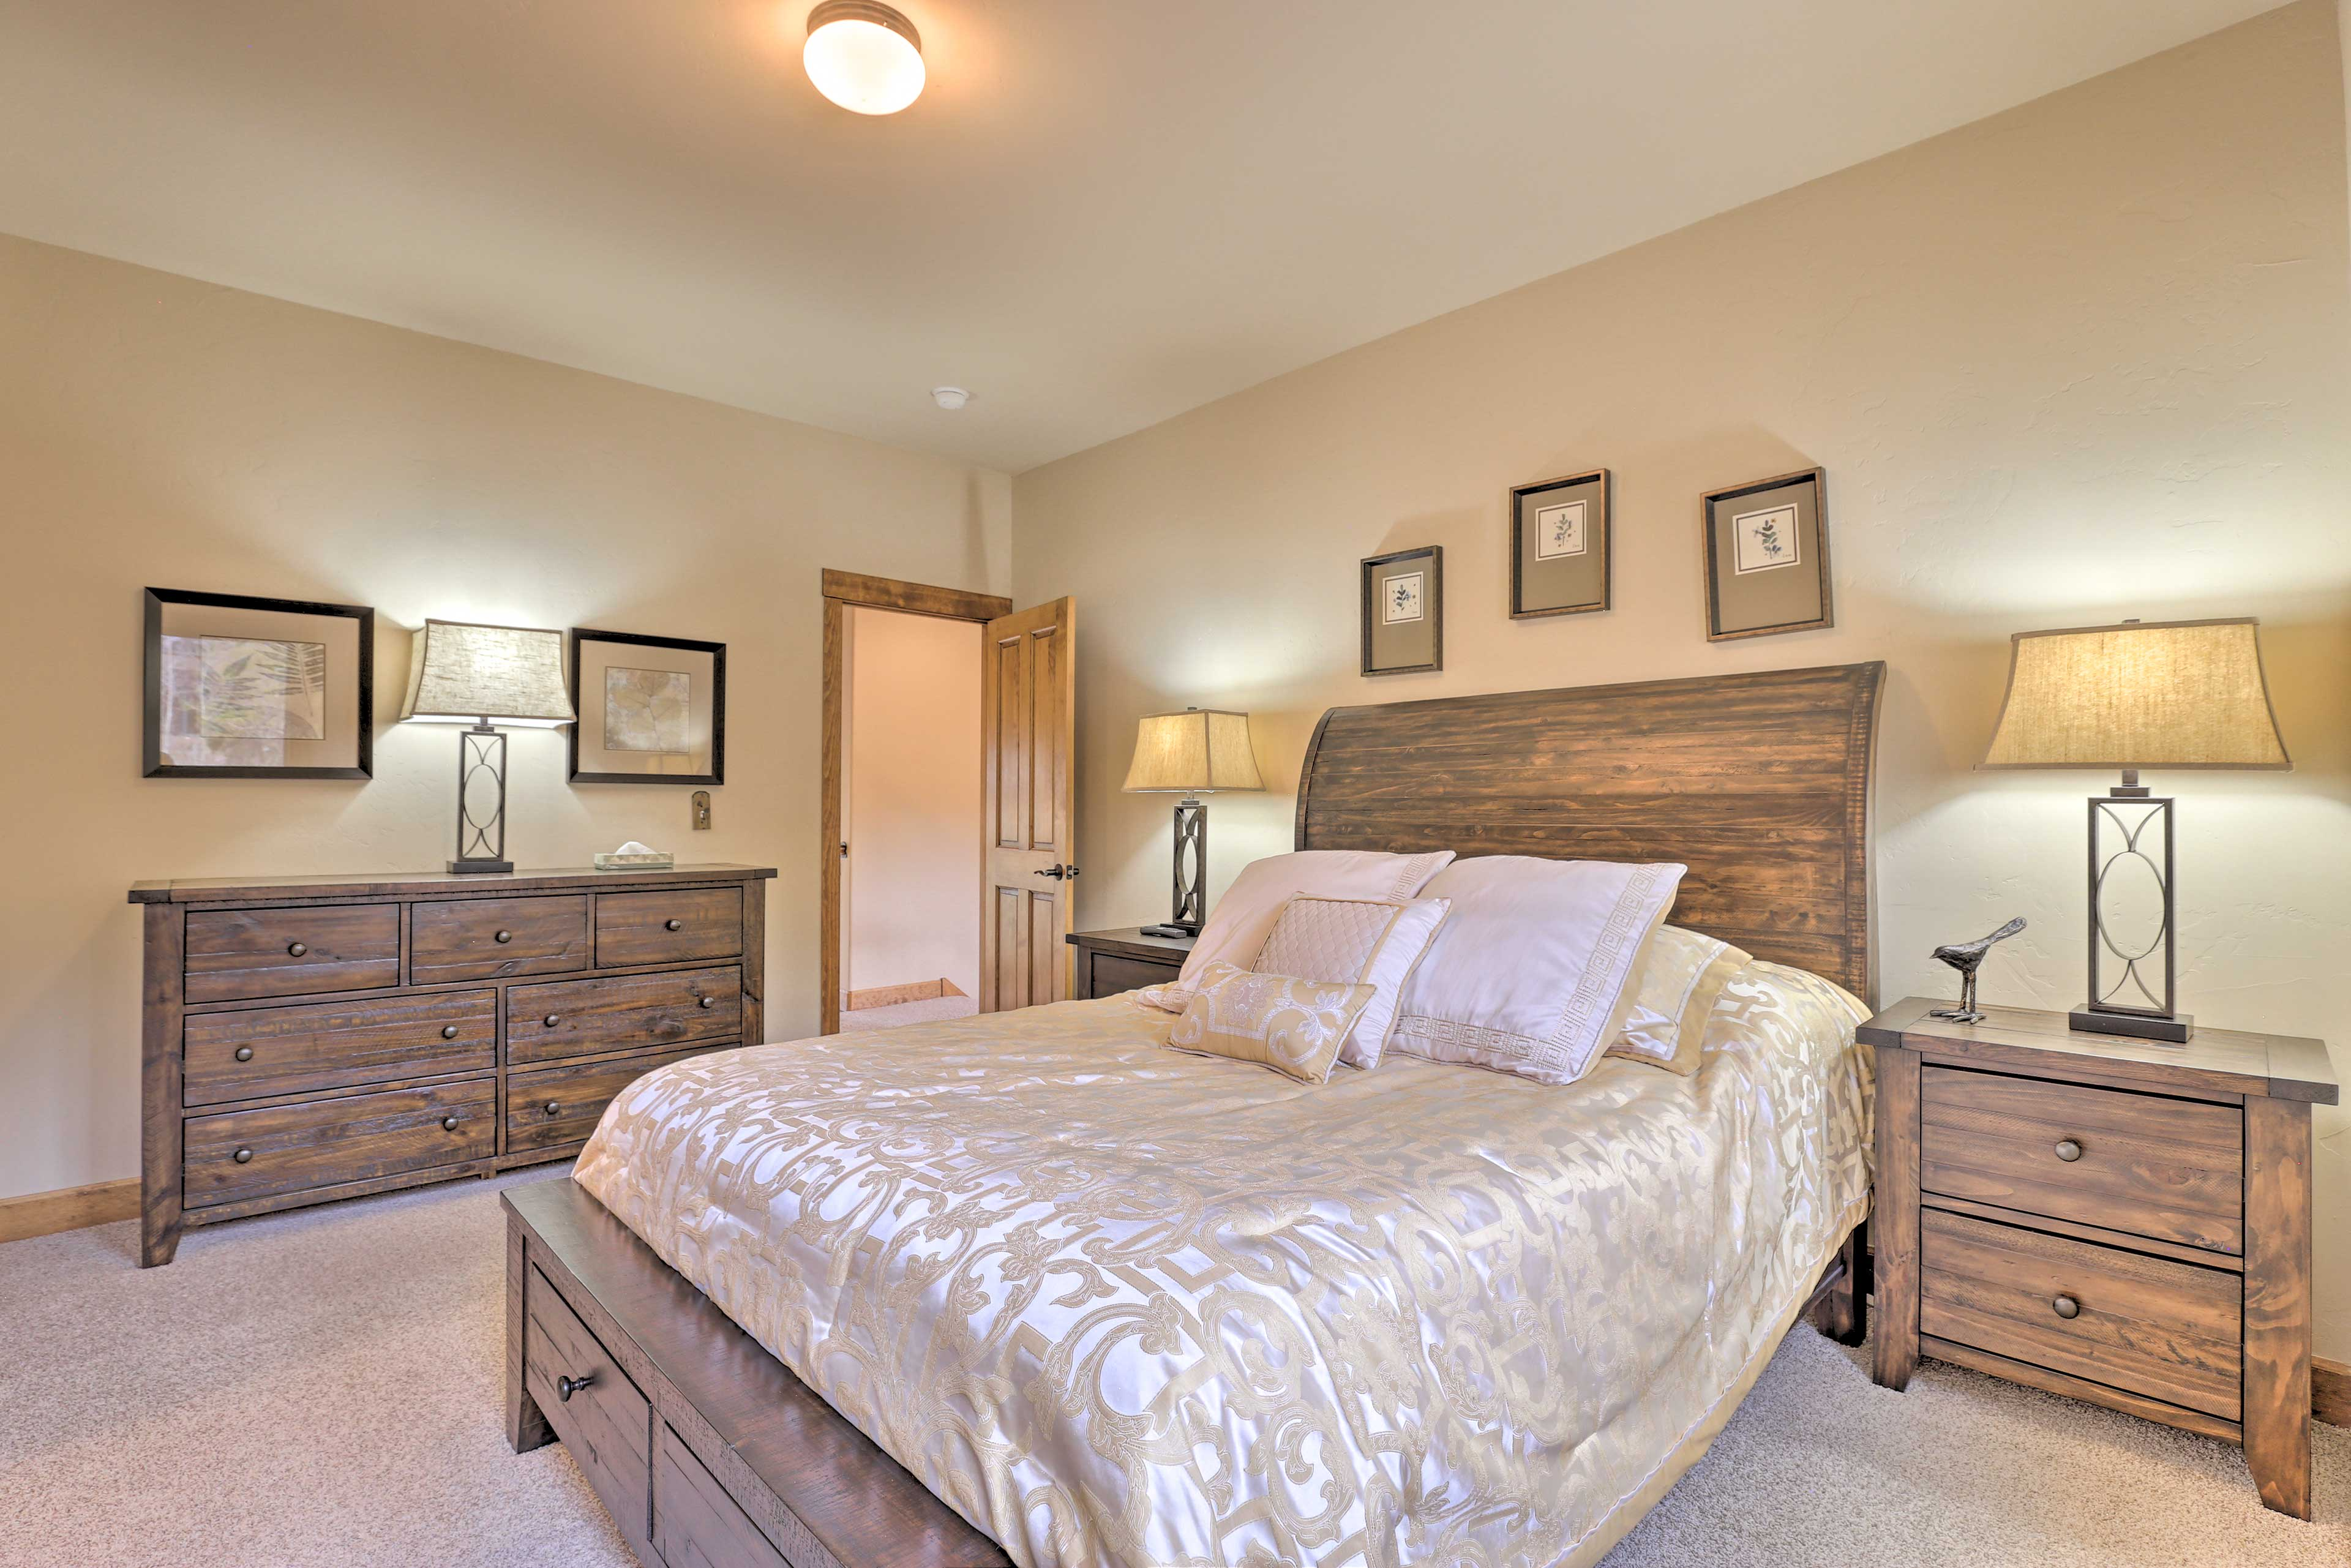 The second bedroom features a plush queen-sized bed.